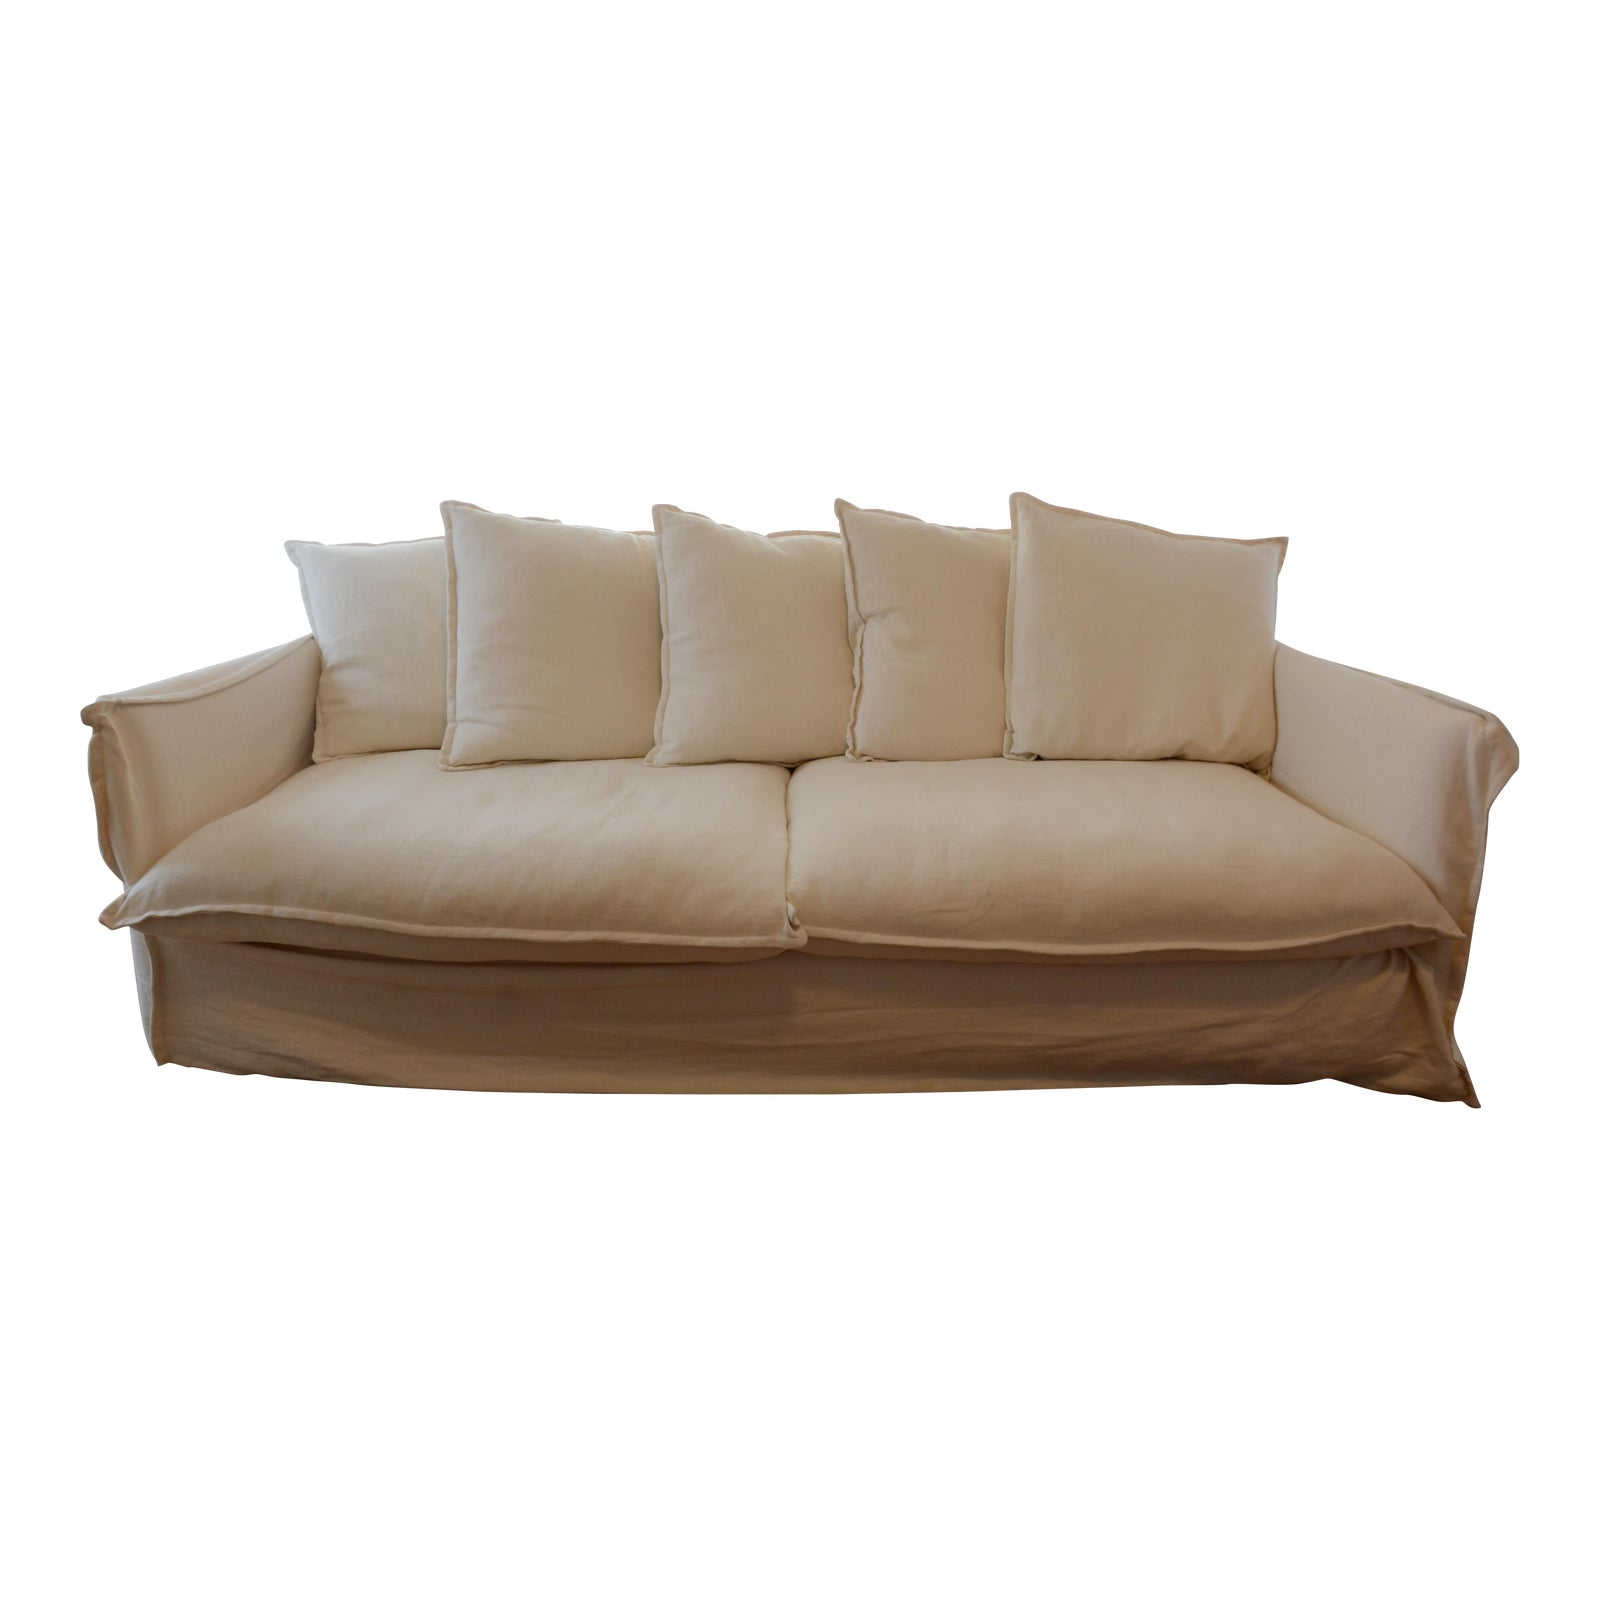 Crate barrel oasis sofa chairish